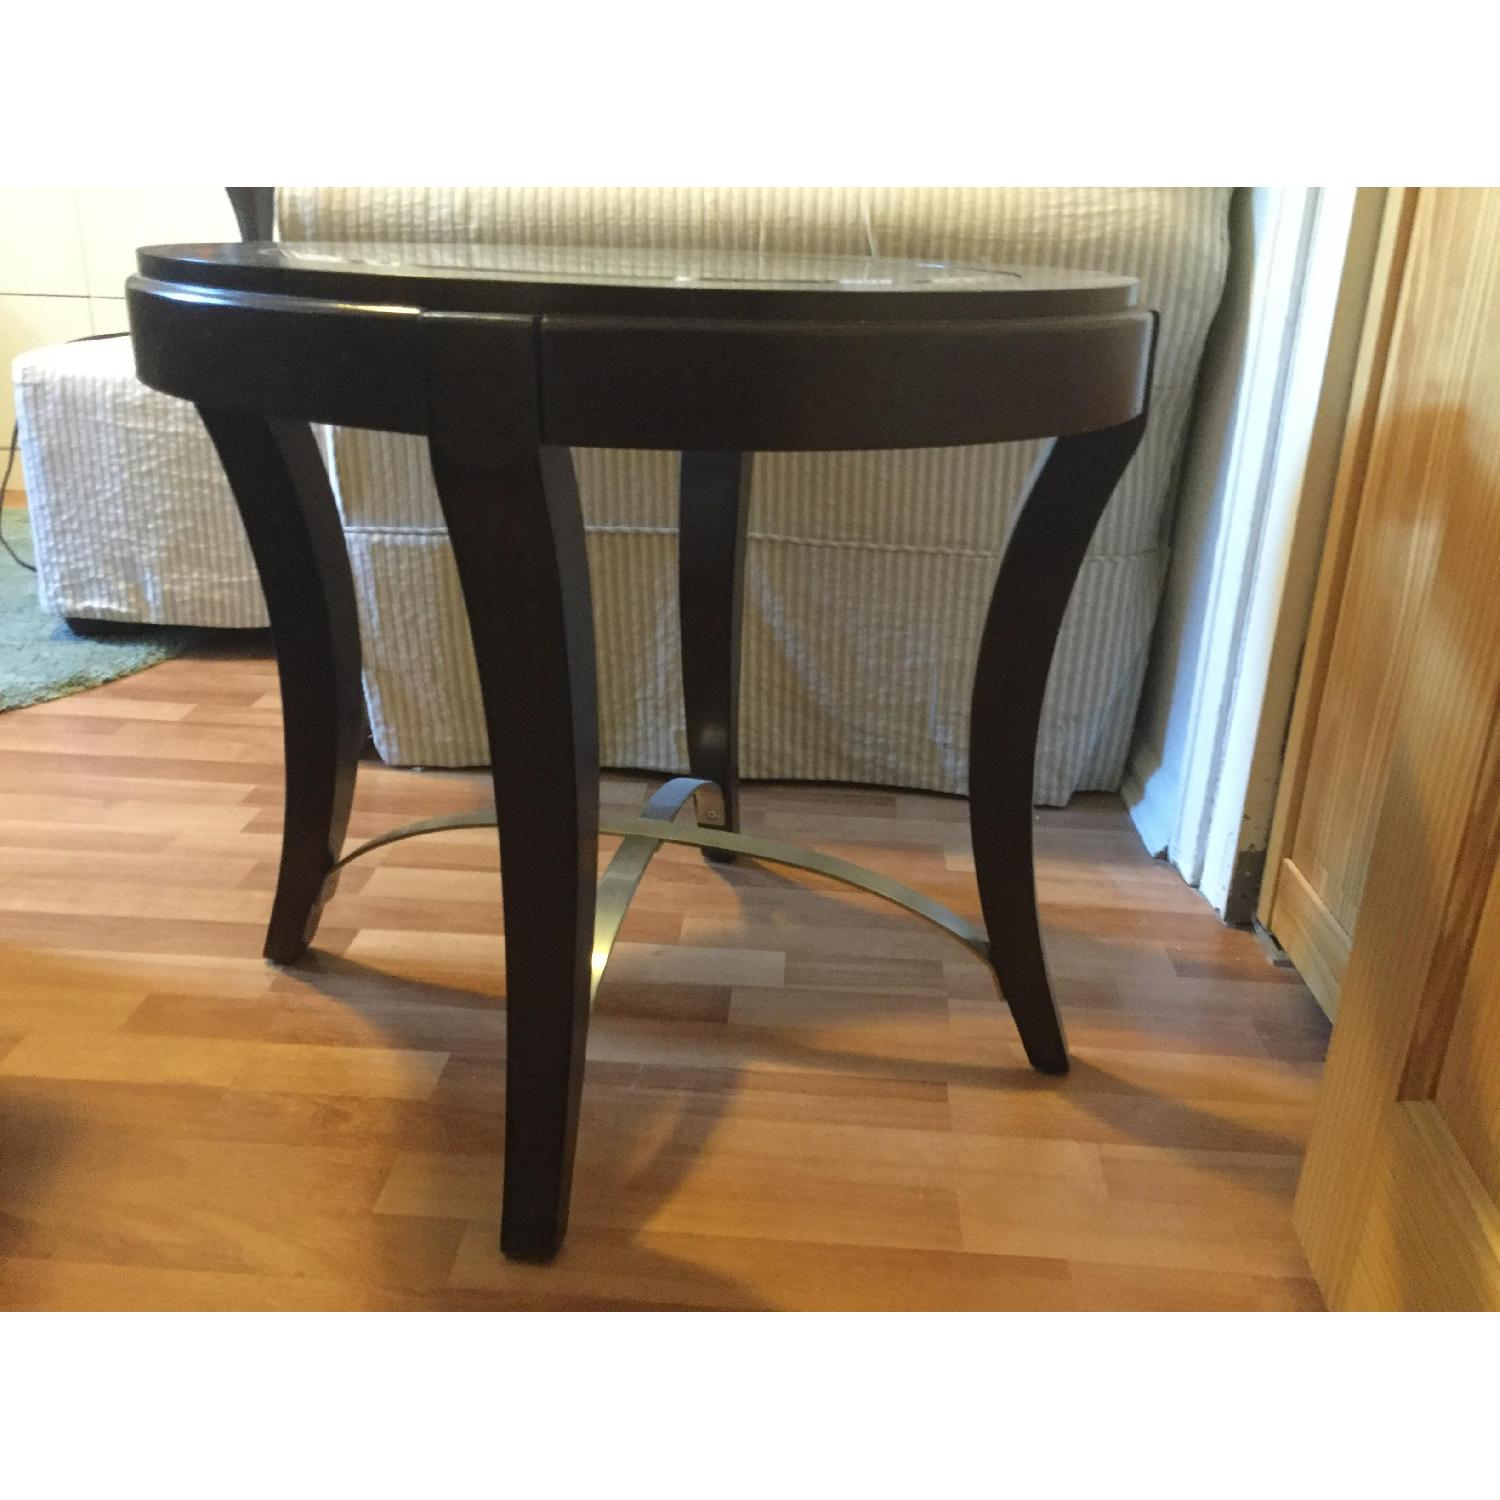 Raymour & Flanigan End Table w/ Glass Insert - image-3